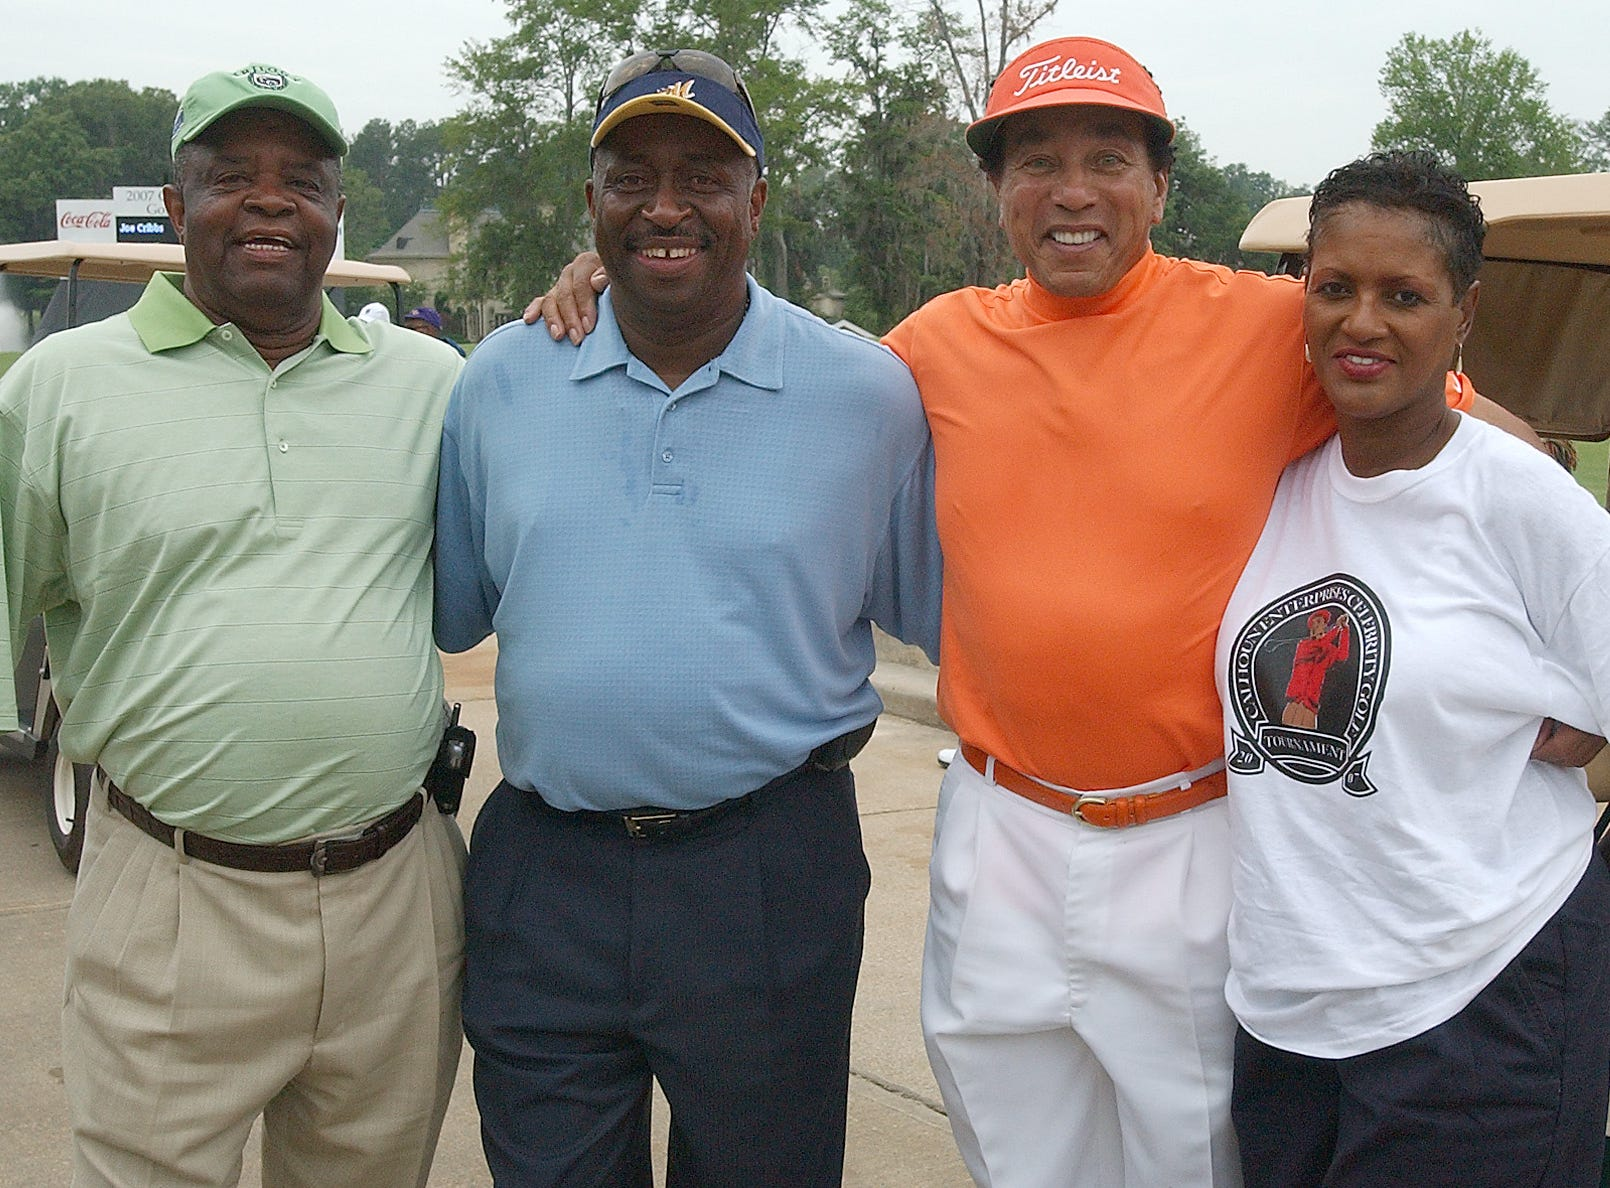 JUNE 25, 2007--Lee Elder, the first African-American to play in the PGA Masters tournament, Greg Calhoun, local businessman, singer Smokey Robinson and event coordinator Cubie Rae Hayes, from left, at the  celebrity golf tournament at Wynnlakes Golf and Country Club Monday. The event was sponsored by Calhoun Foods and Coca-Cola to raise funds for the Sickle Cell Foundation and the First Montgomery Tee. (Montgomery Advertiser, David Bundy)